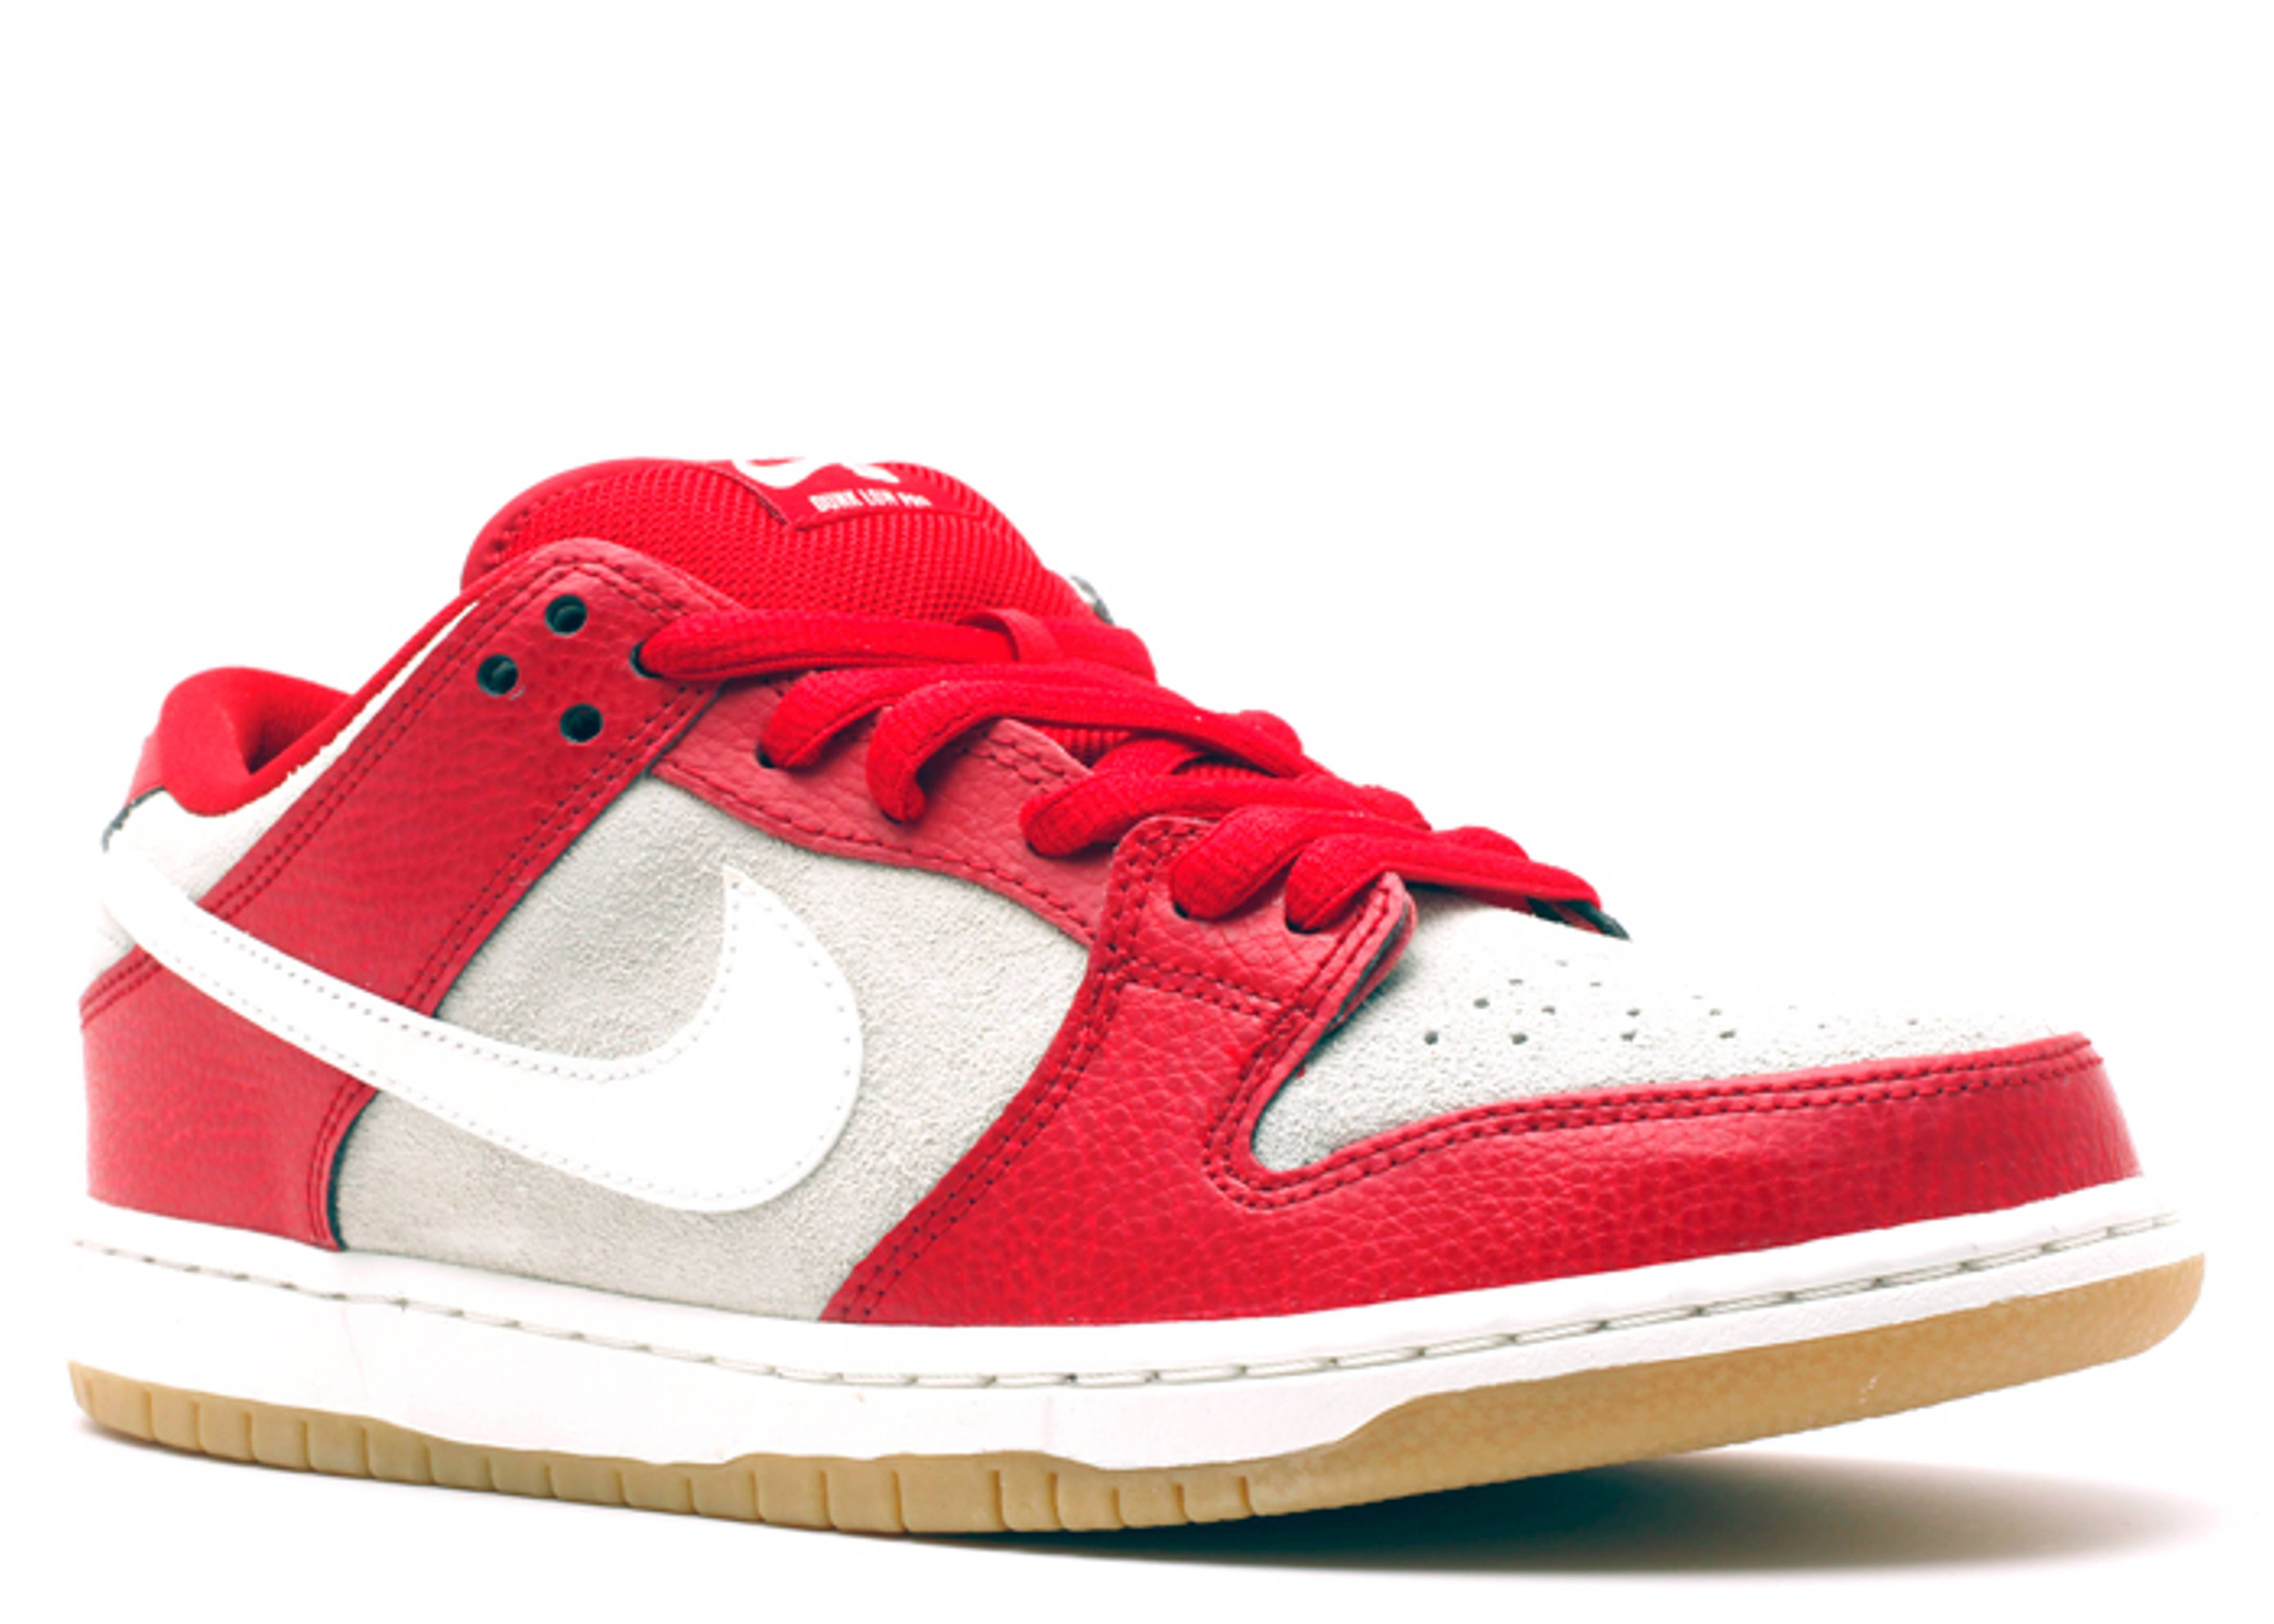 f01bc7cd8655 ... inexpensive nike dunk low valentines day dunk low premium sb . 932c1  3a089